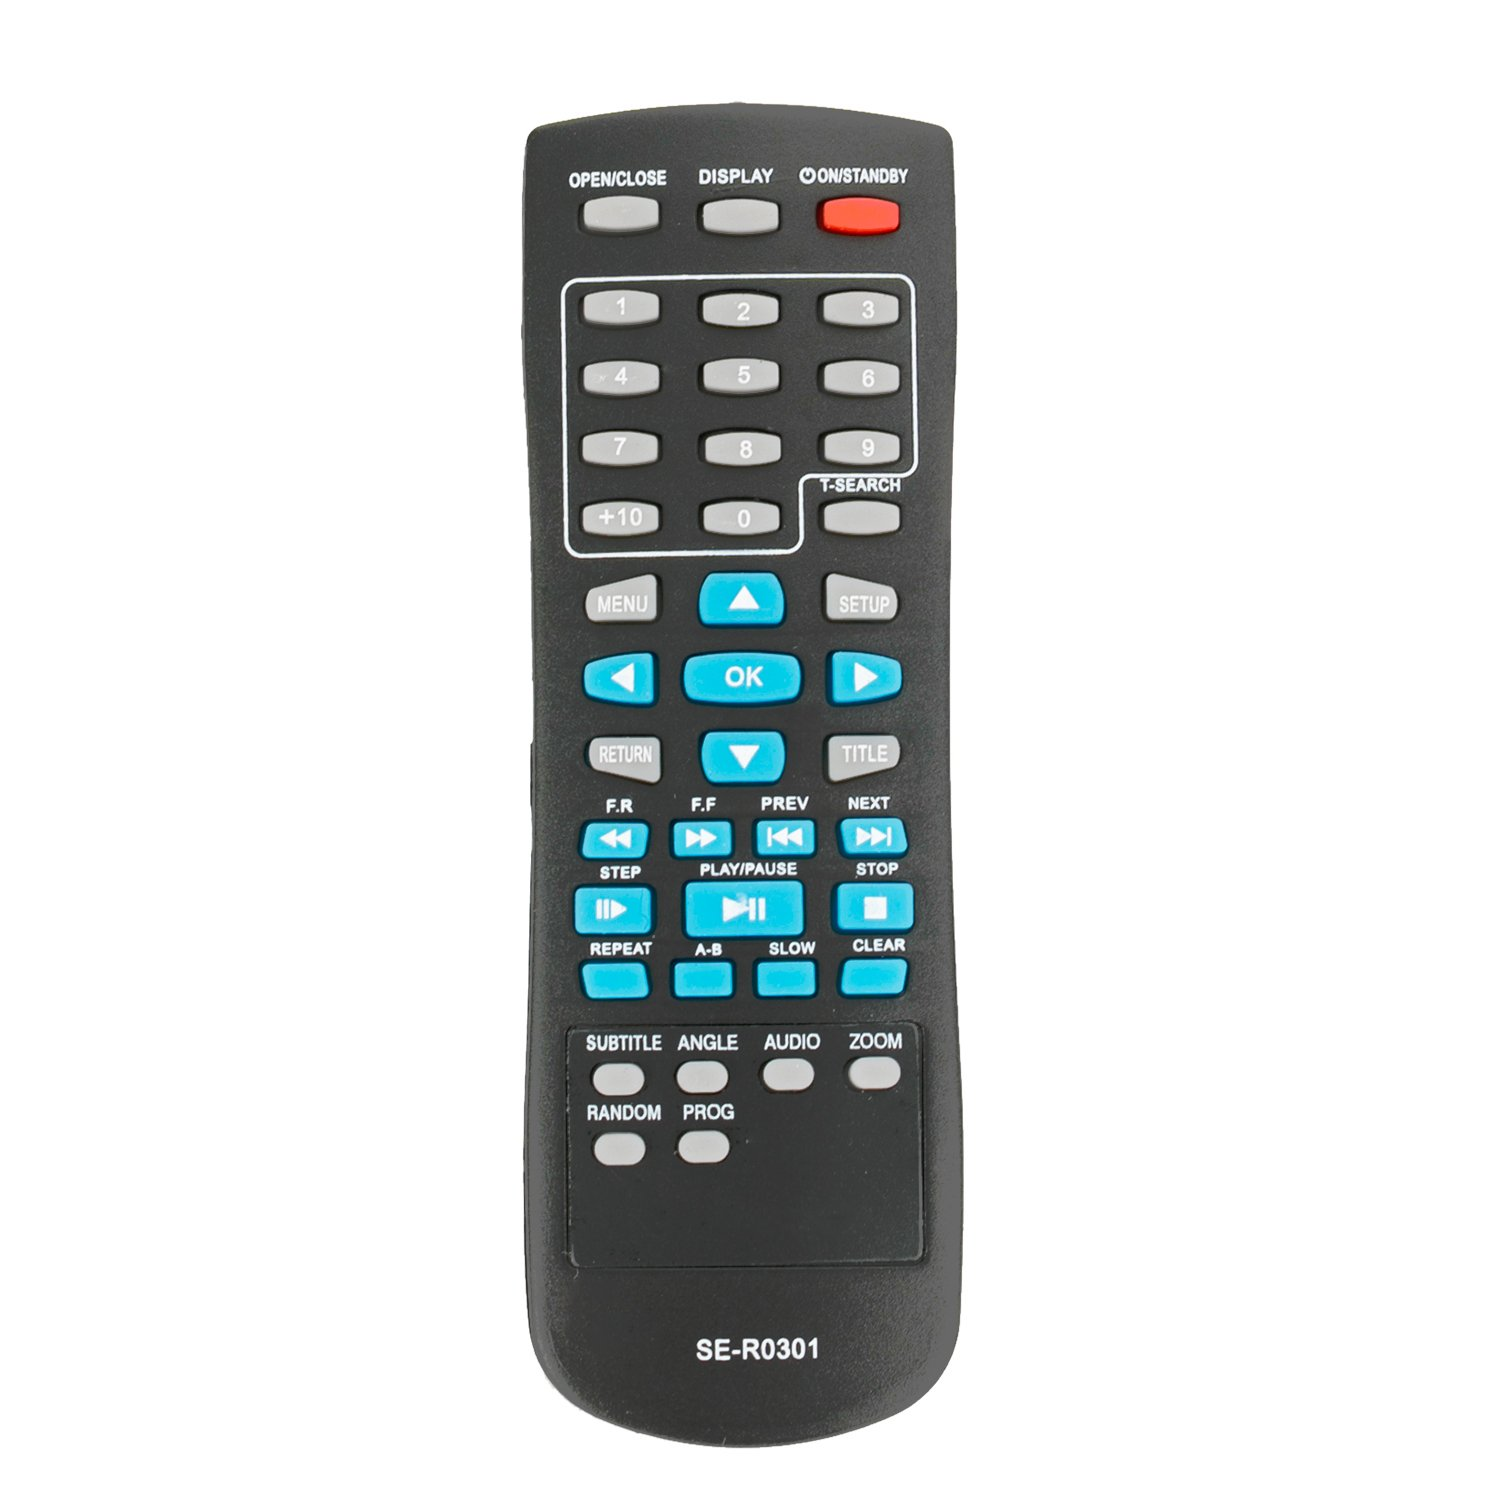 New SE-R0301 Replaced Remote fit for Toshiba DVD SD-4100 SD-4200 SD-4200KC SD-4200KU SD- K790KU SD-4300 SD-4300KU SD-K780KU SD-K780 SD-3300KU SD-3300 SD-690KY SD-590 SD-590KY SD-690KR by ZdalaMit (Image #1)